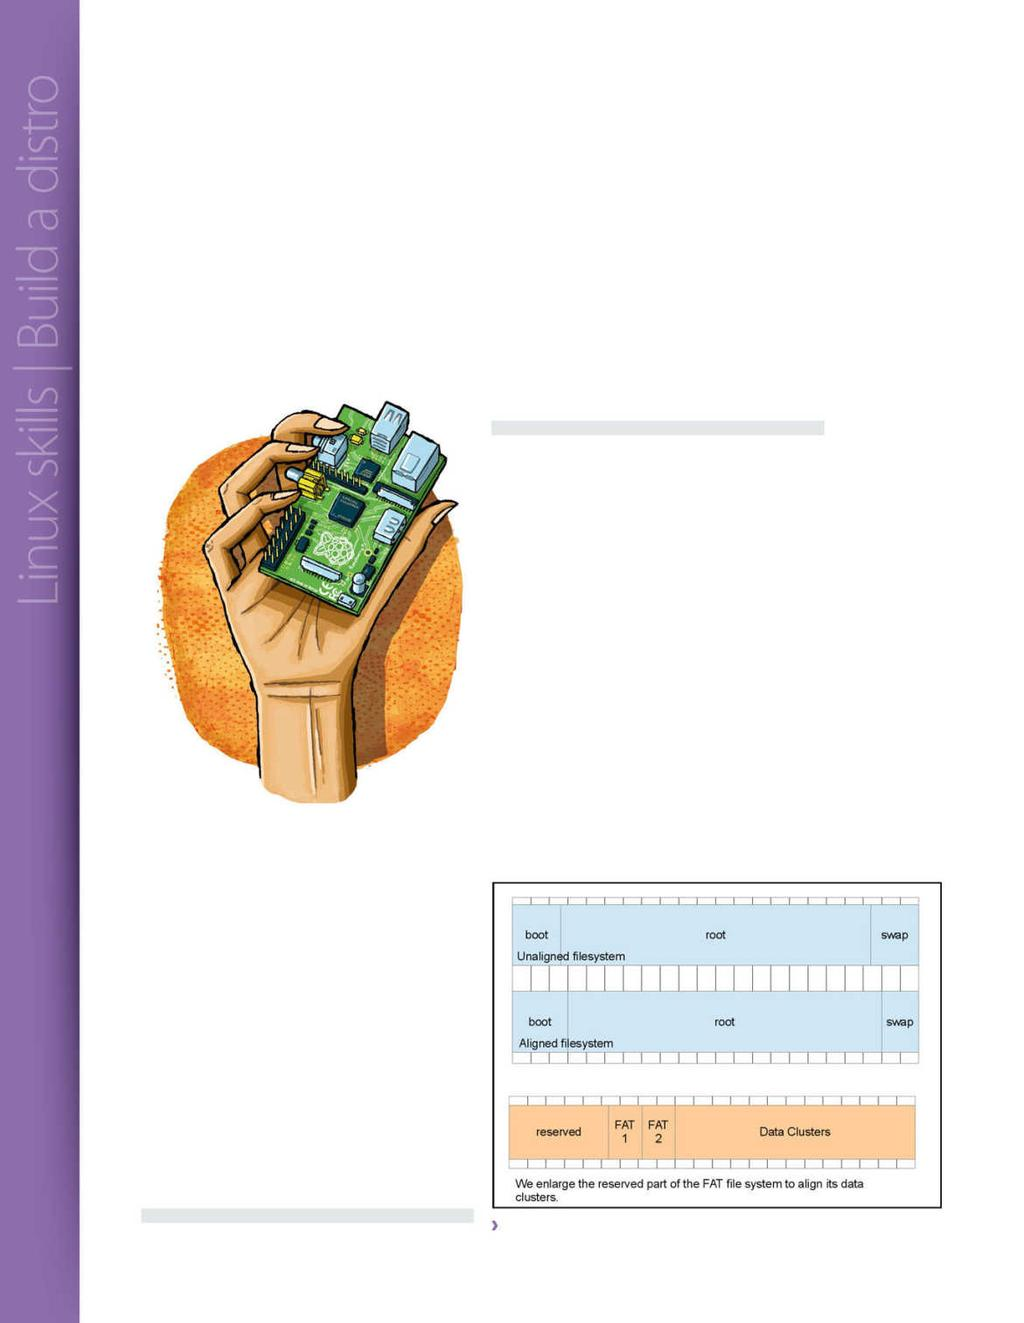 New The Only Guide You Need To Get More From Amazing Mini Pc Blitz Dual Turbo Timer Wiring Diagram Packed Pages Thz Pdf